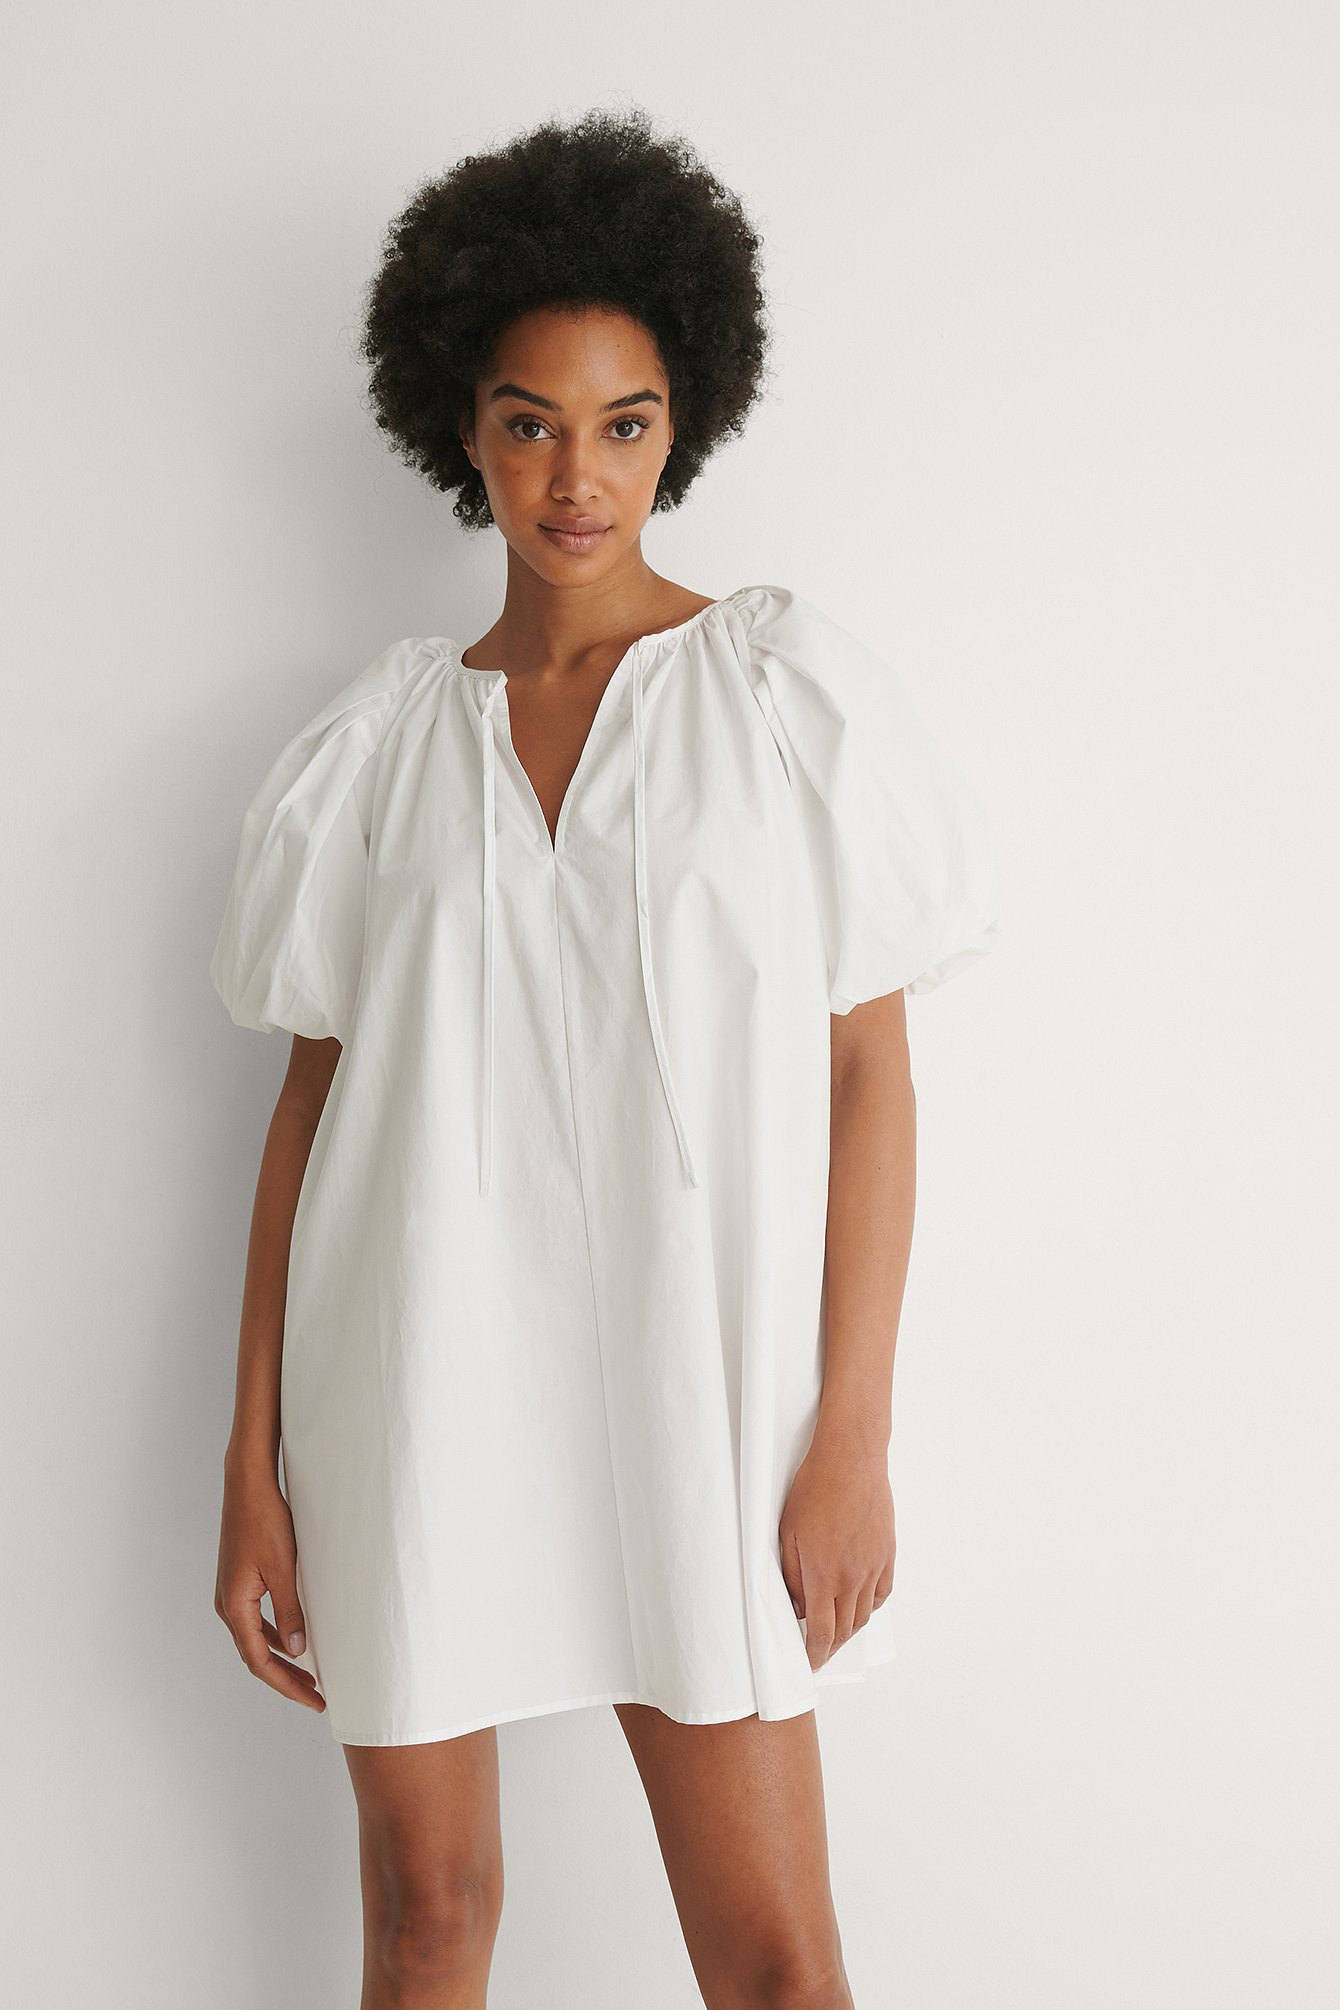 White Maxi Volume Mini Cotton Dress